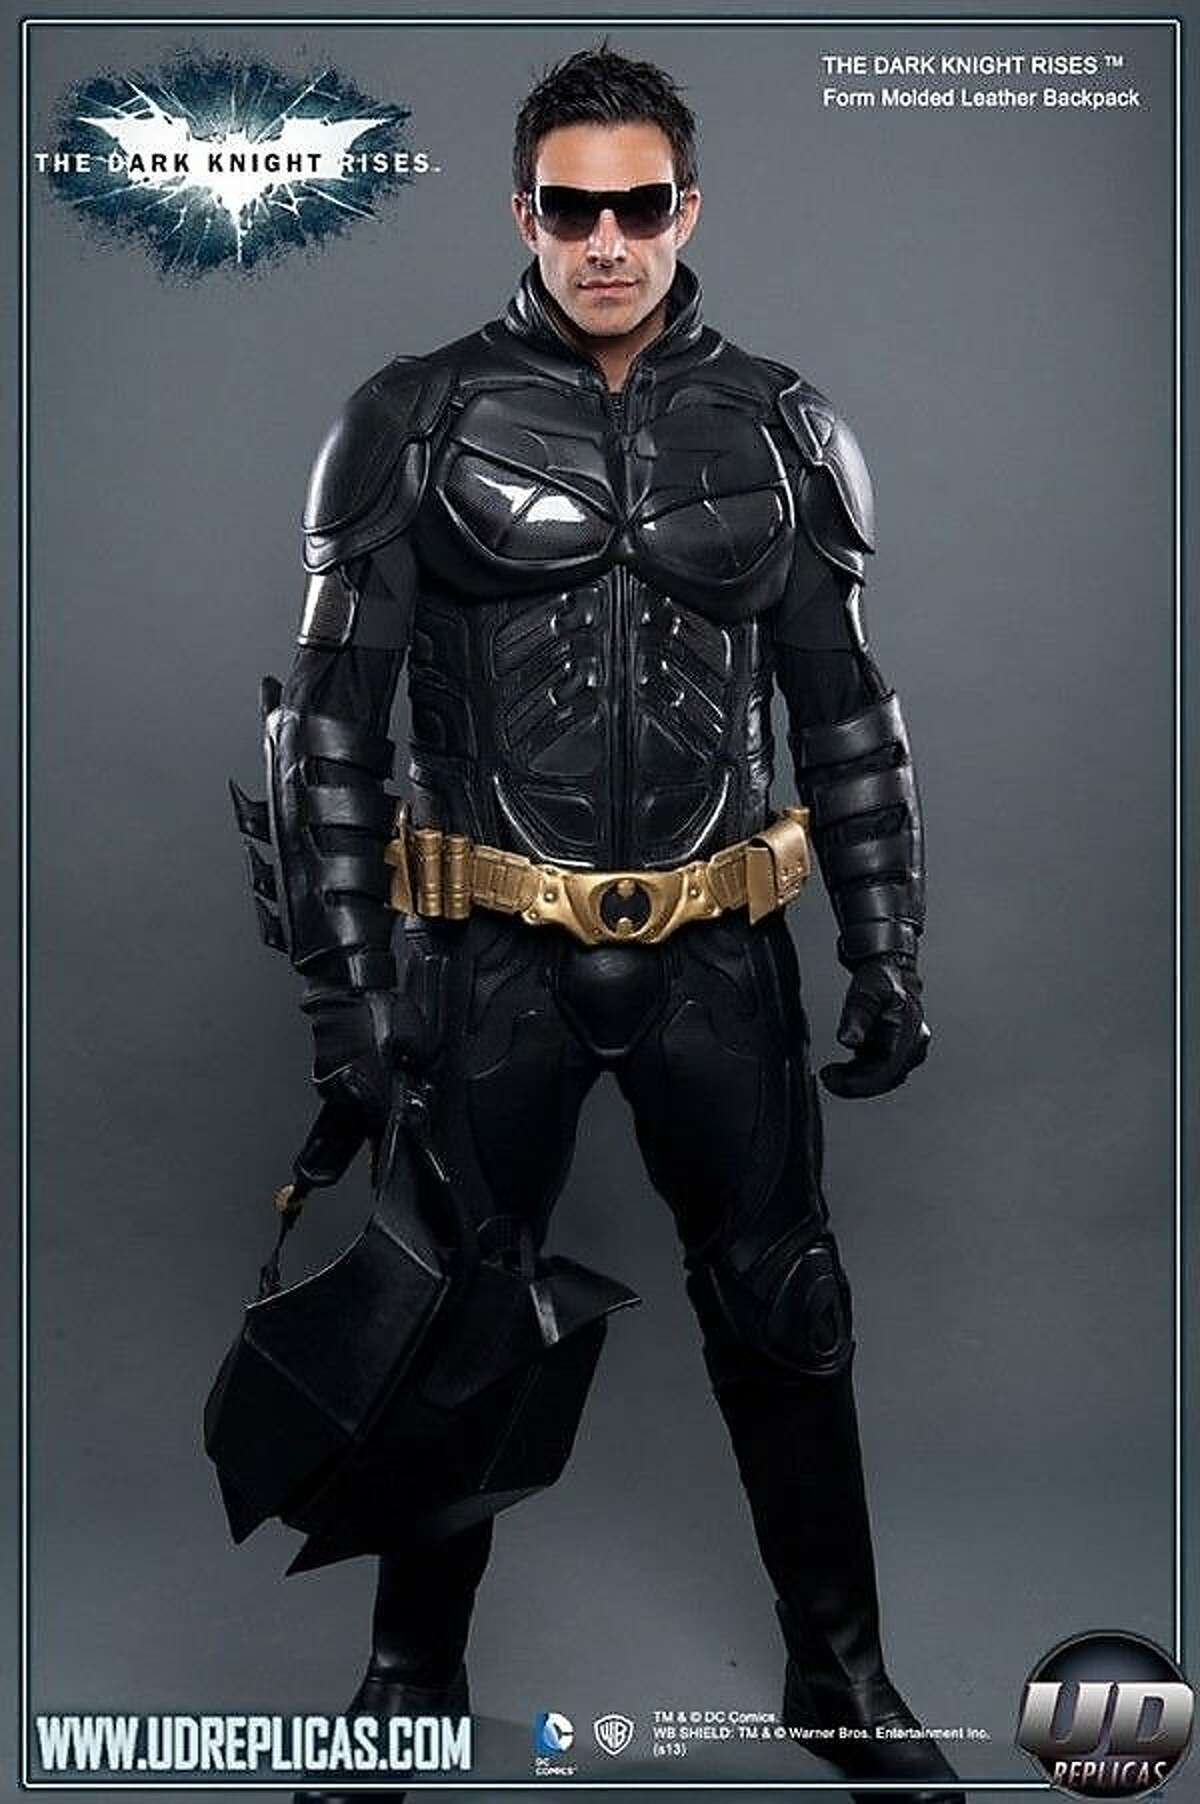 This Batman costume sold for $2,500. It's a replica of the costume worn in